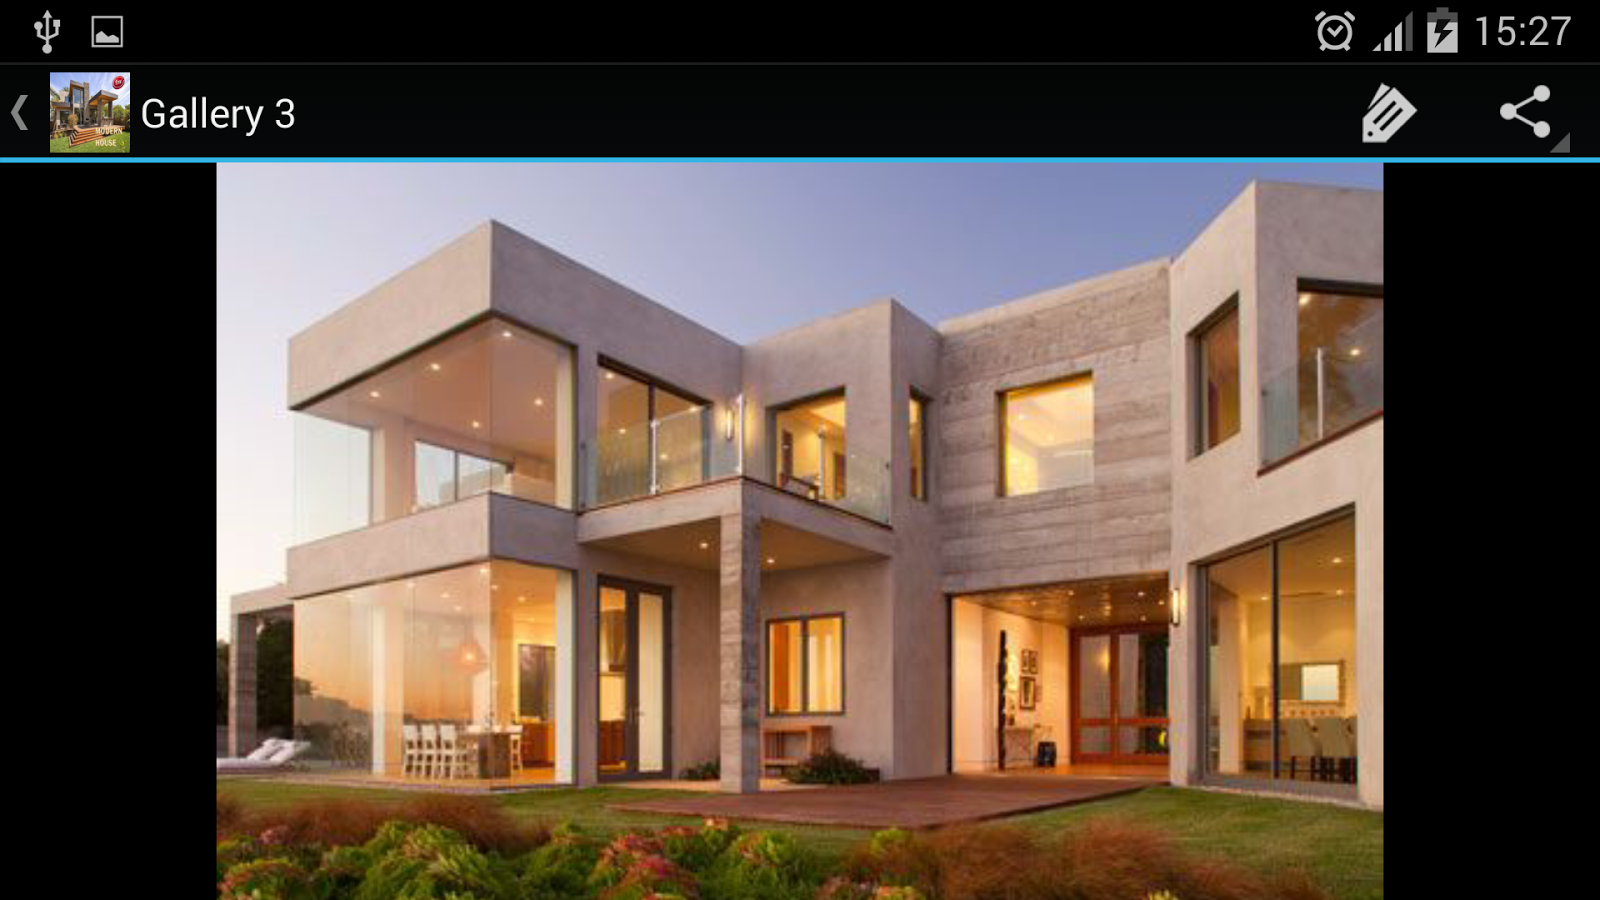 Modern house designs android apps on google play for Stylish house designs